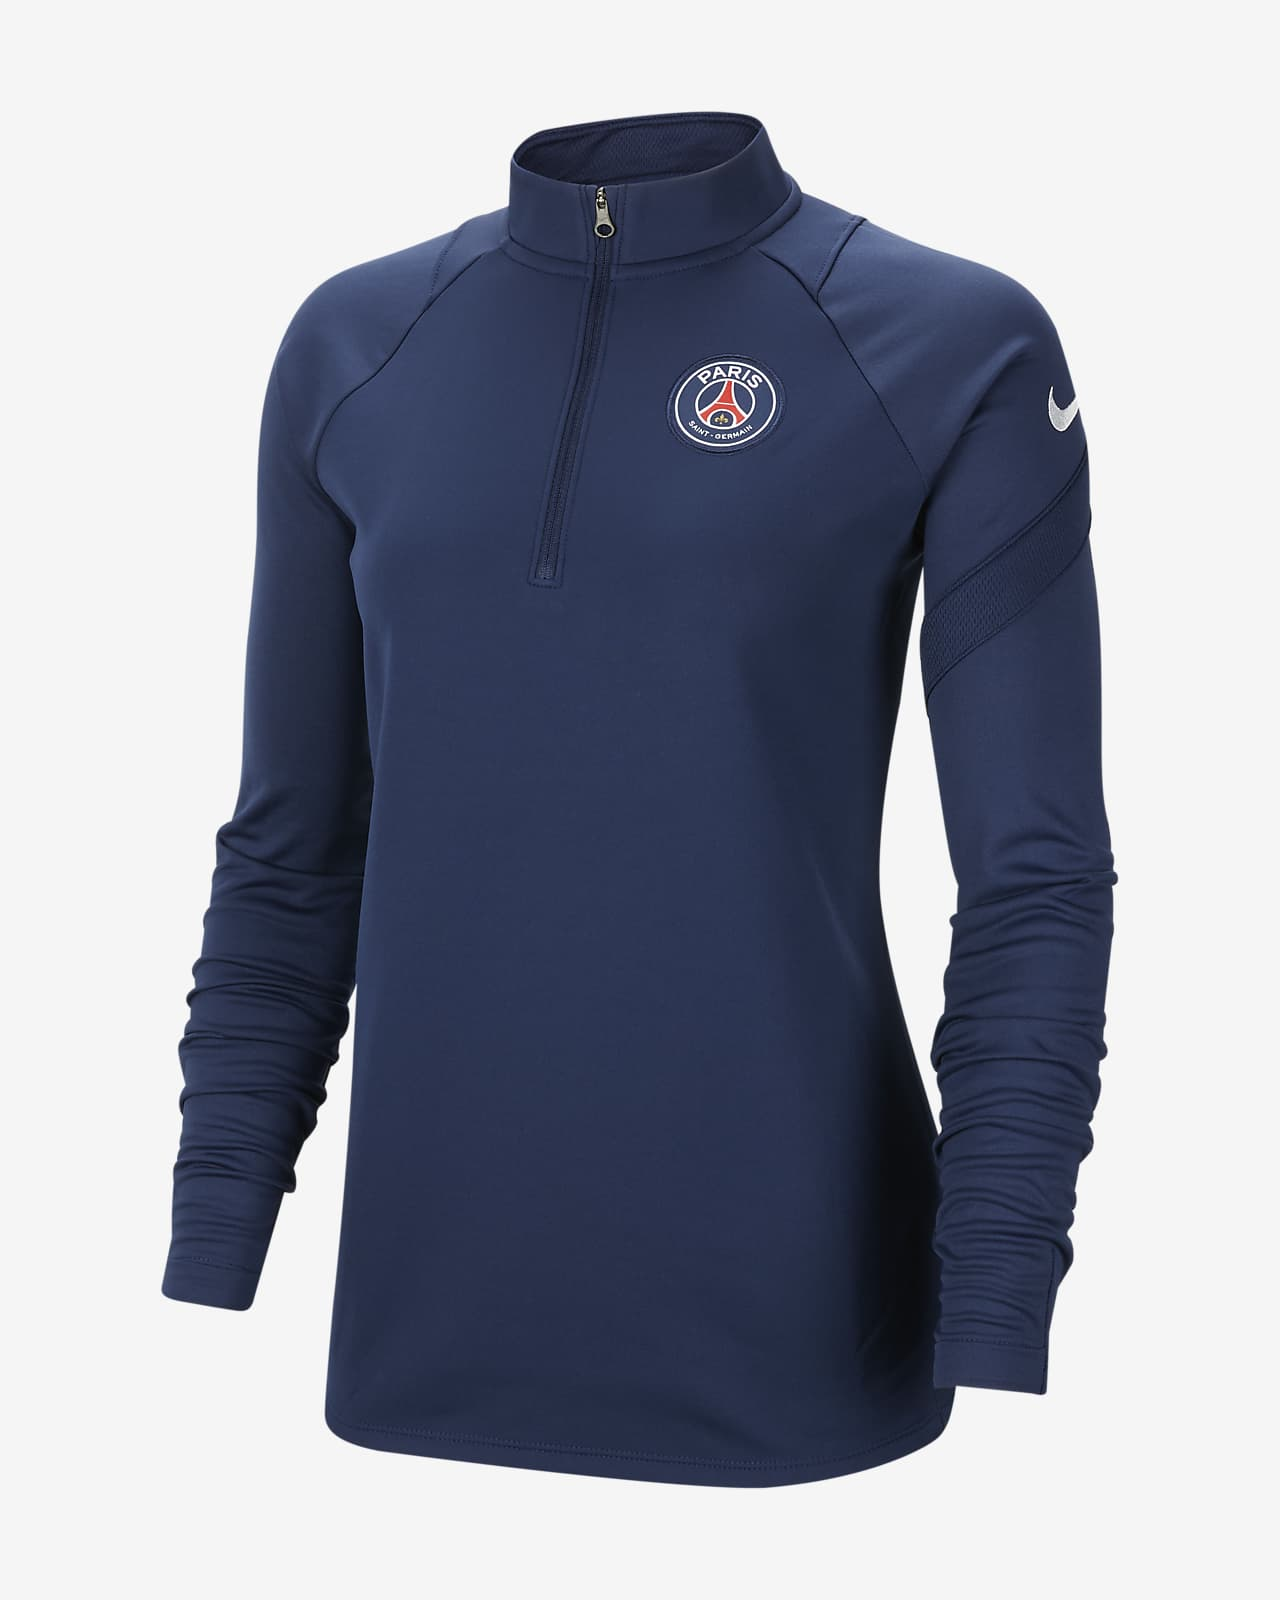 Paris Saint-Germain Academy Pro Women's Football Drill Top